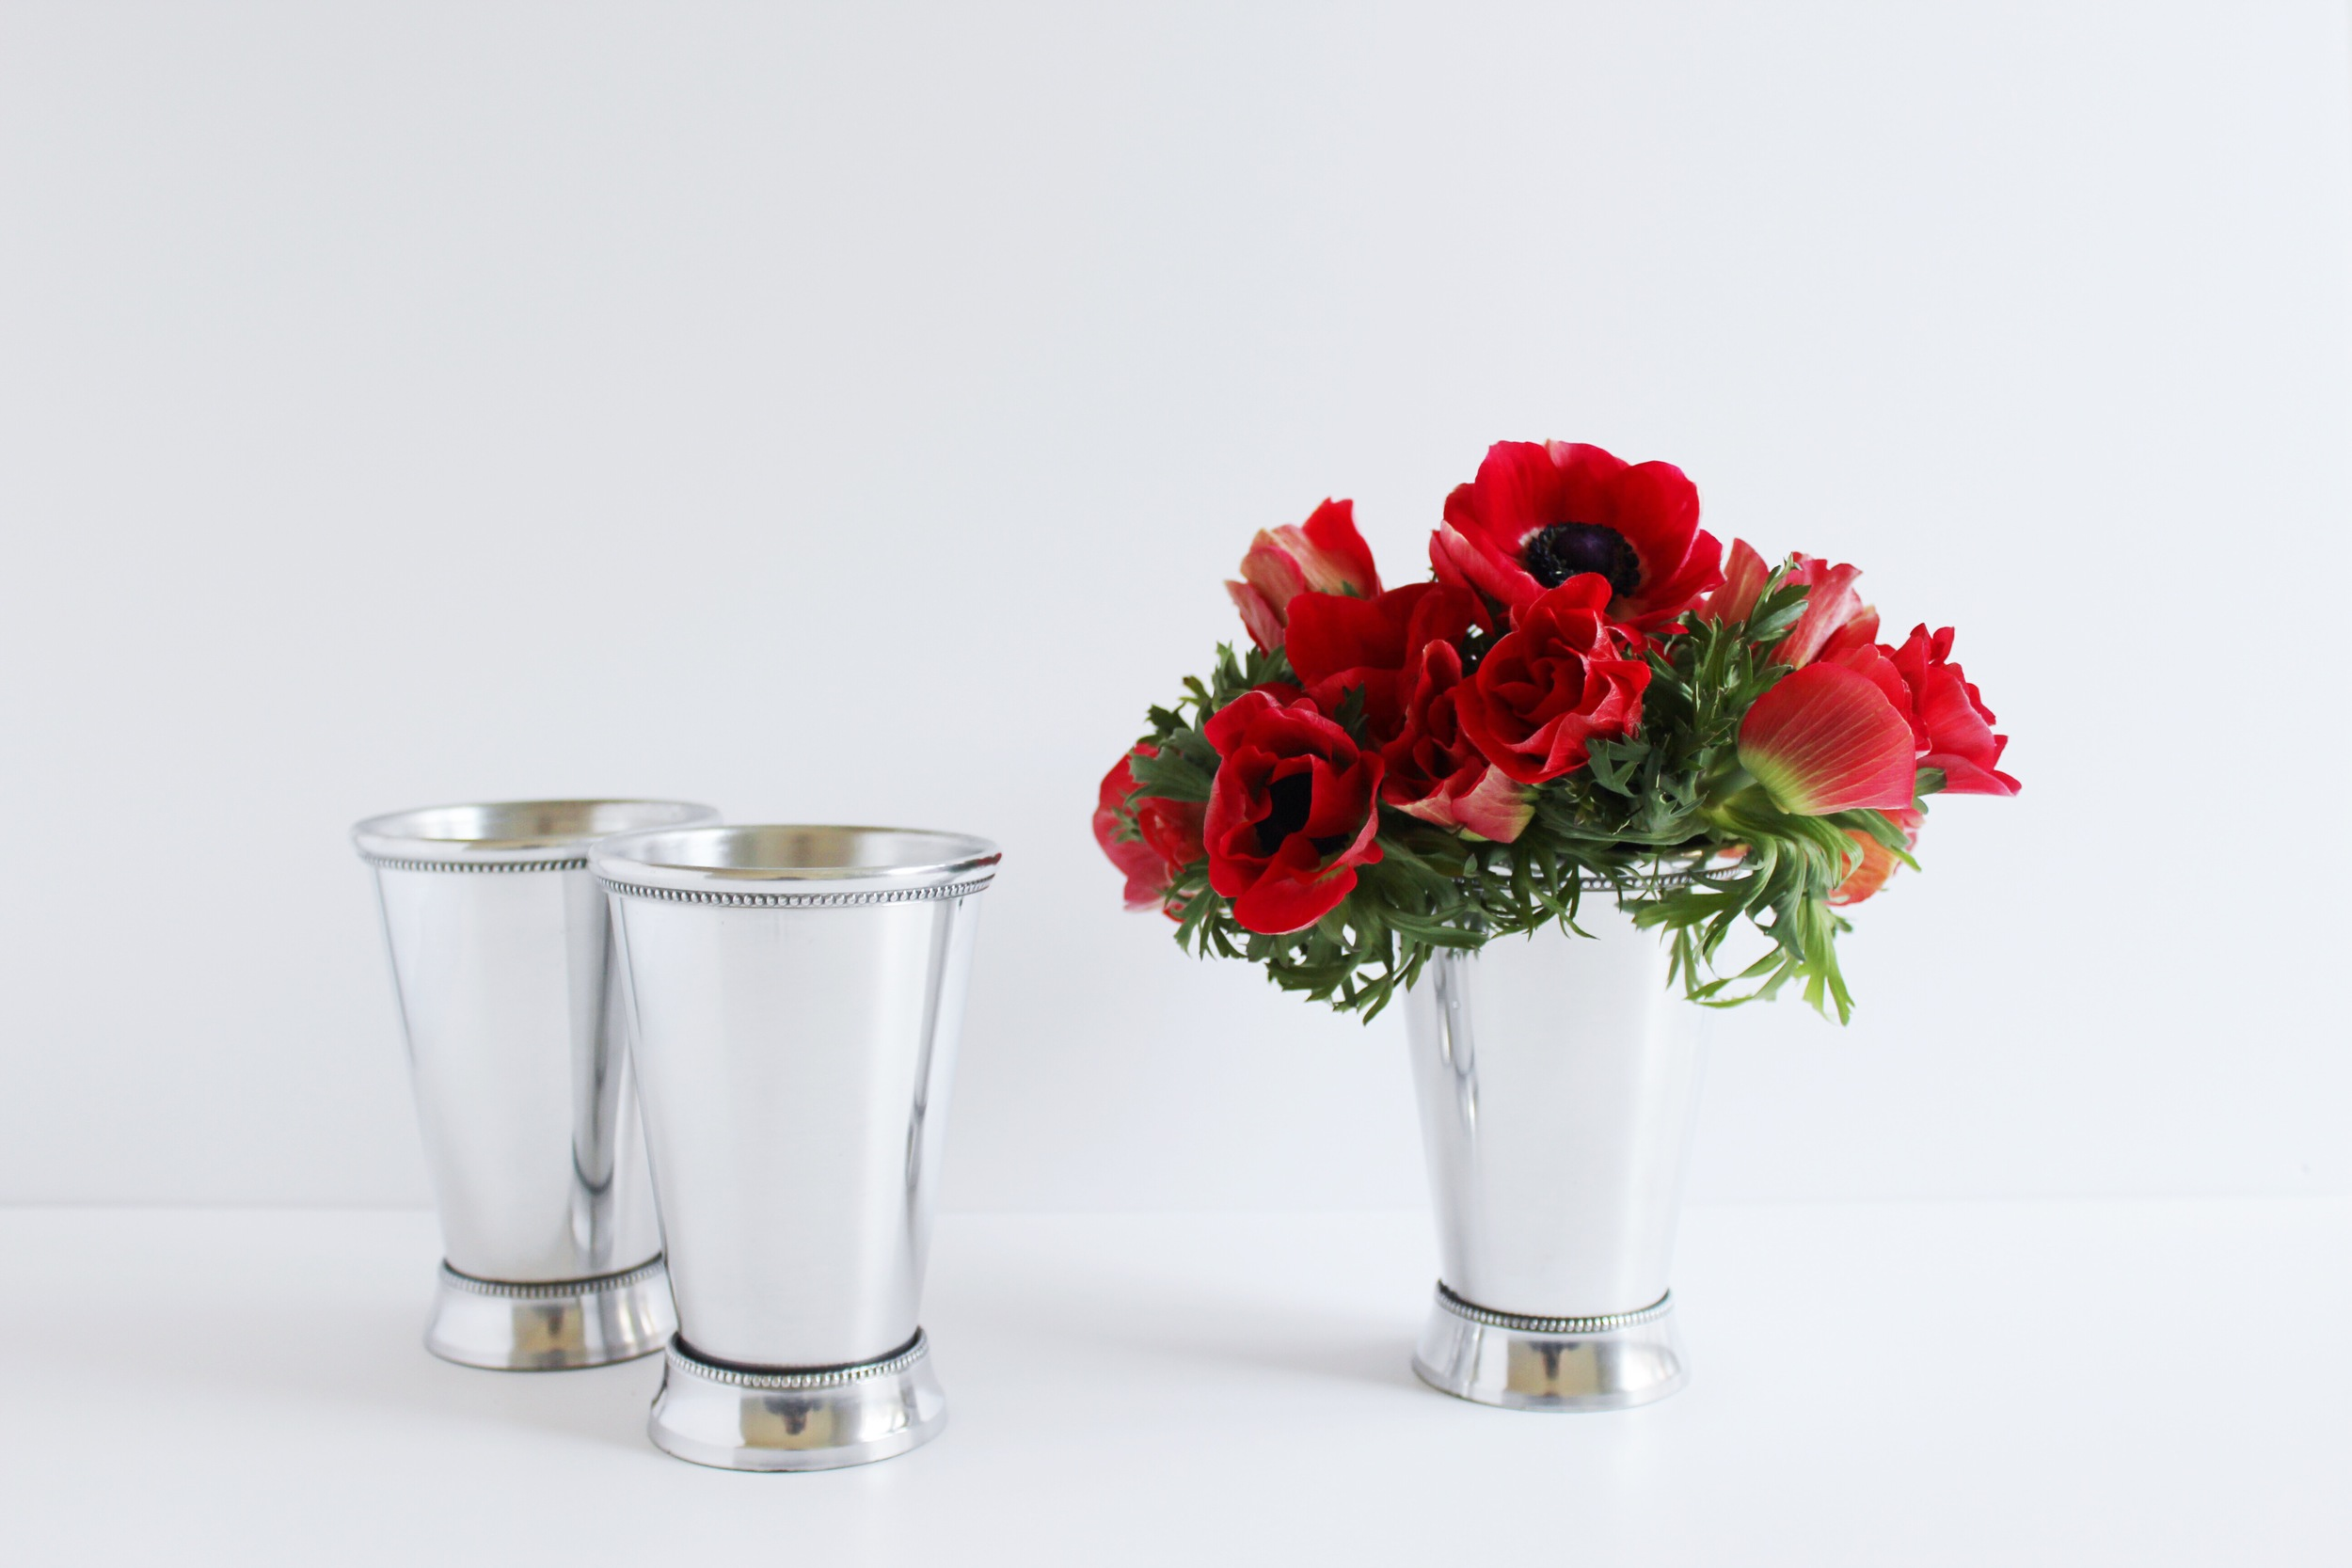 Derby Day Flowers - Serve up Kentucky Derby Charm with Red Flowers in Mint Julep Cups | Sundays and Somedays